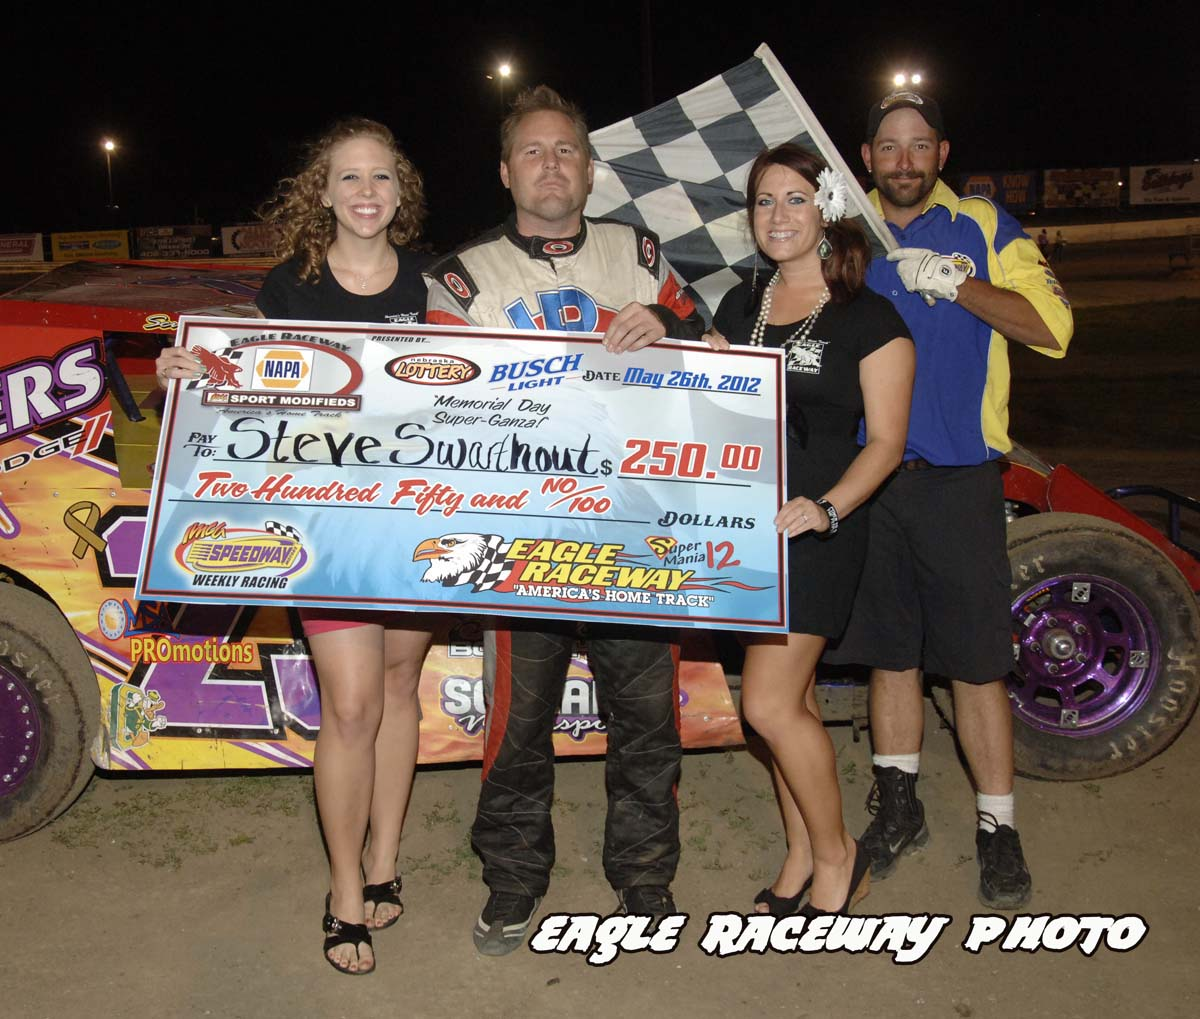 eagle-05-26-12-steve-swarthout-with-catrina-harris-and-elle-patocka-and-flagman-billy-lloyd